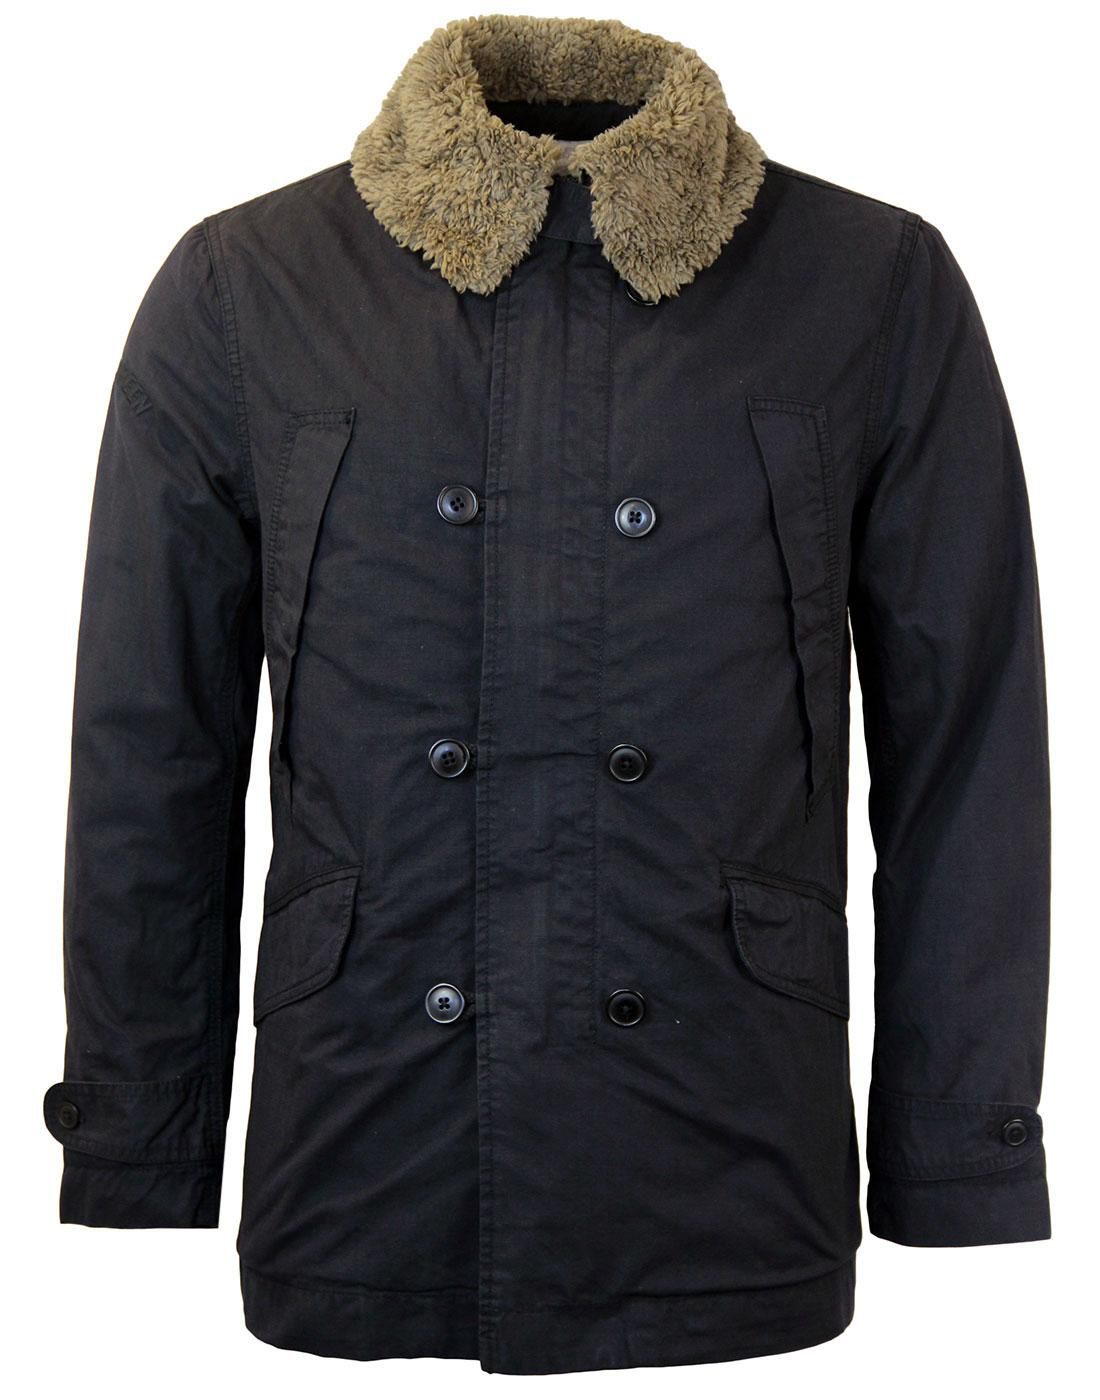 Parbrook PRETTY GREEN Double Breasted Retro Jacket